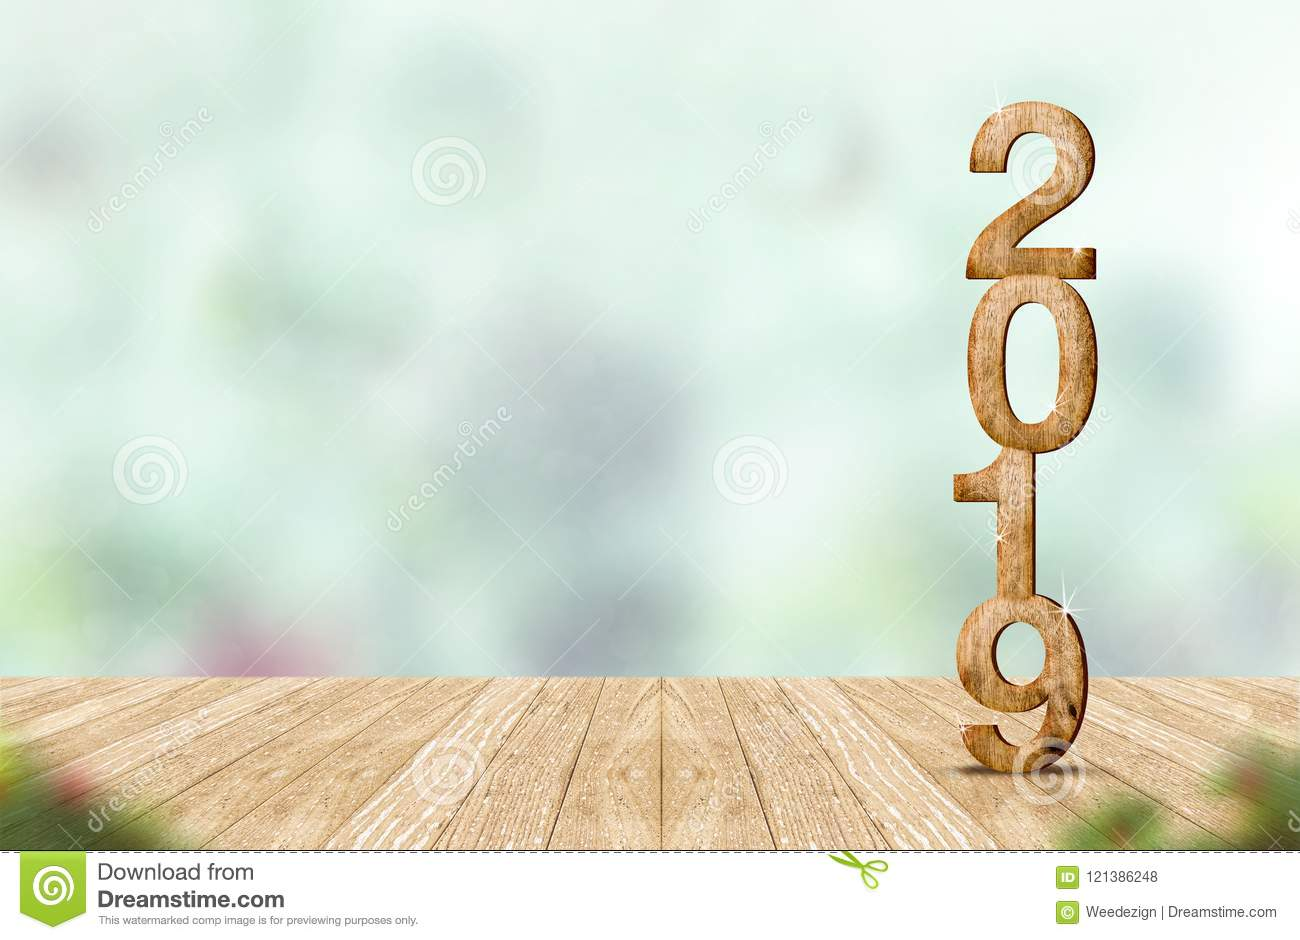 New year 2019 wood number 3d rendering on wooden plank table a